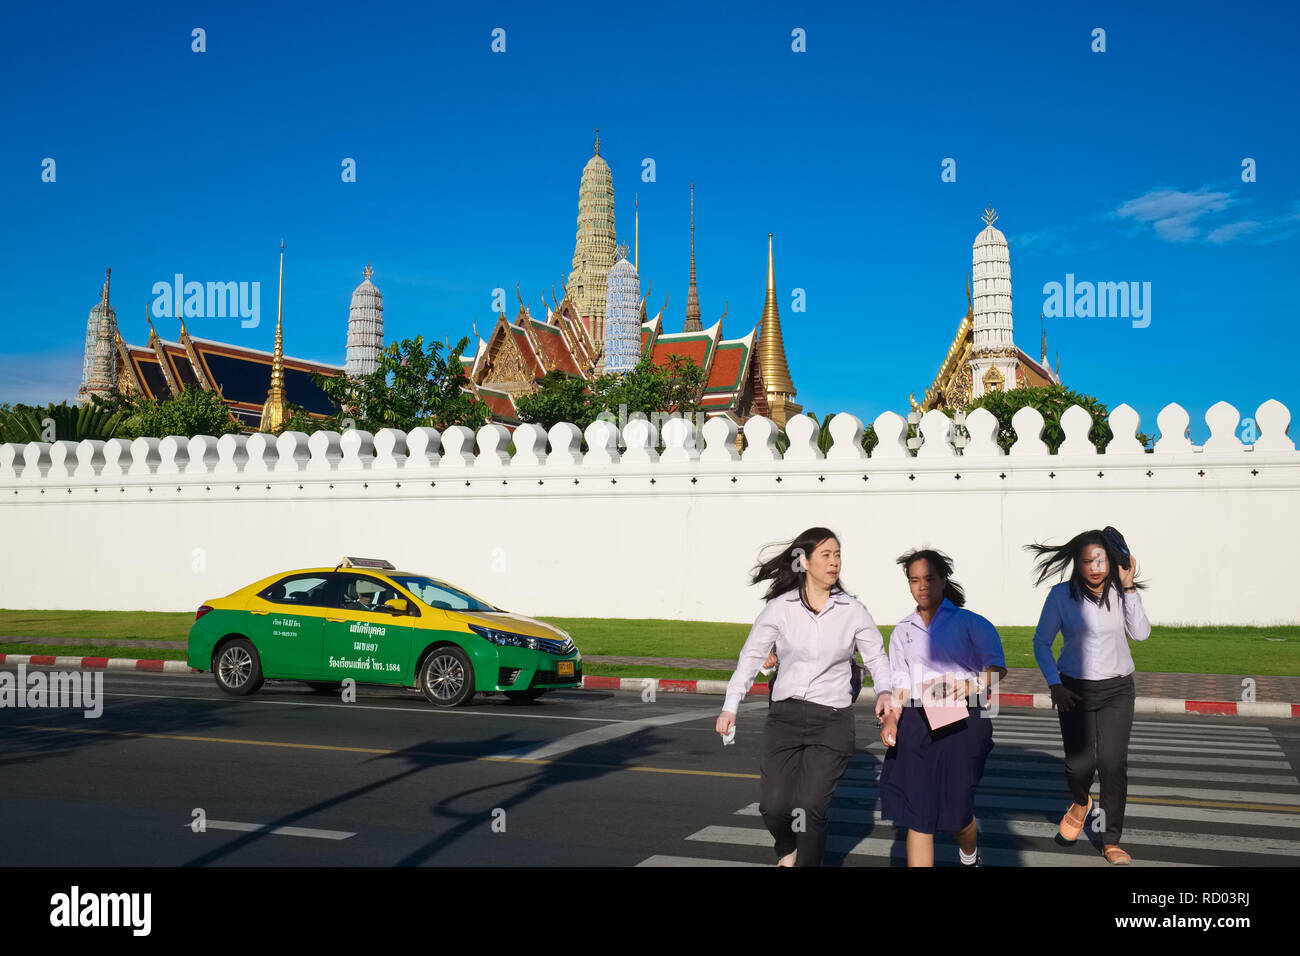 Women rushing over a zebra crossing in front oft the eastern wall of Wat Phra Kaew & Grand Palace, Bangkok, Thailand, as a taxi passes behind them - Stock Image